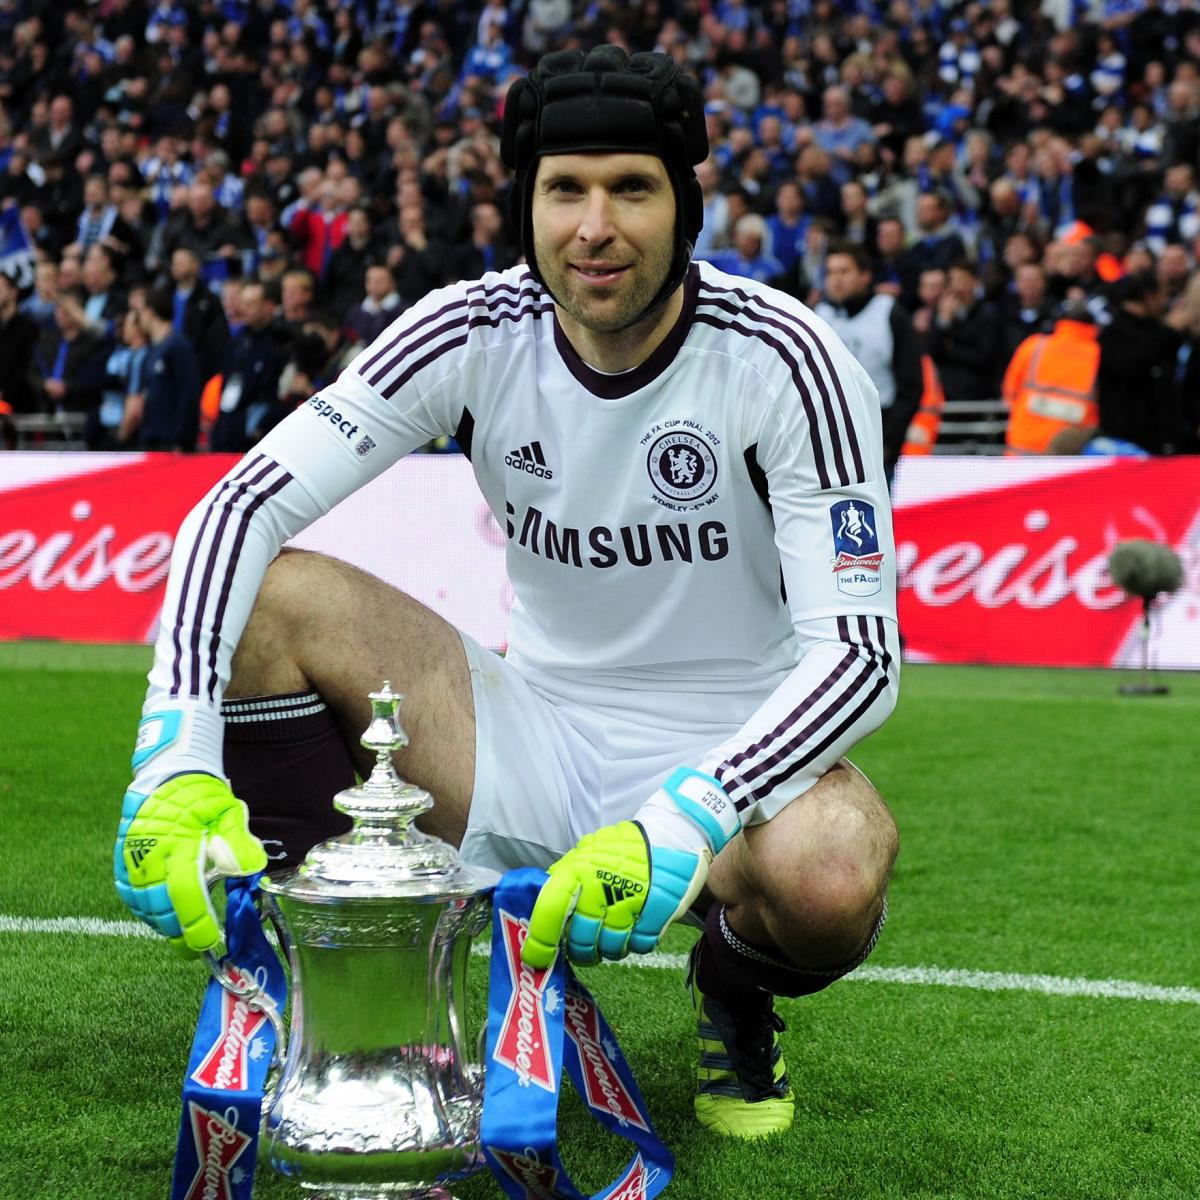 Champions League Final 2012: UEFA Champions League Final 2012: Why Petr Cech Is Biggest